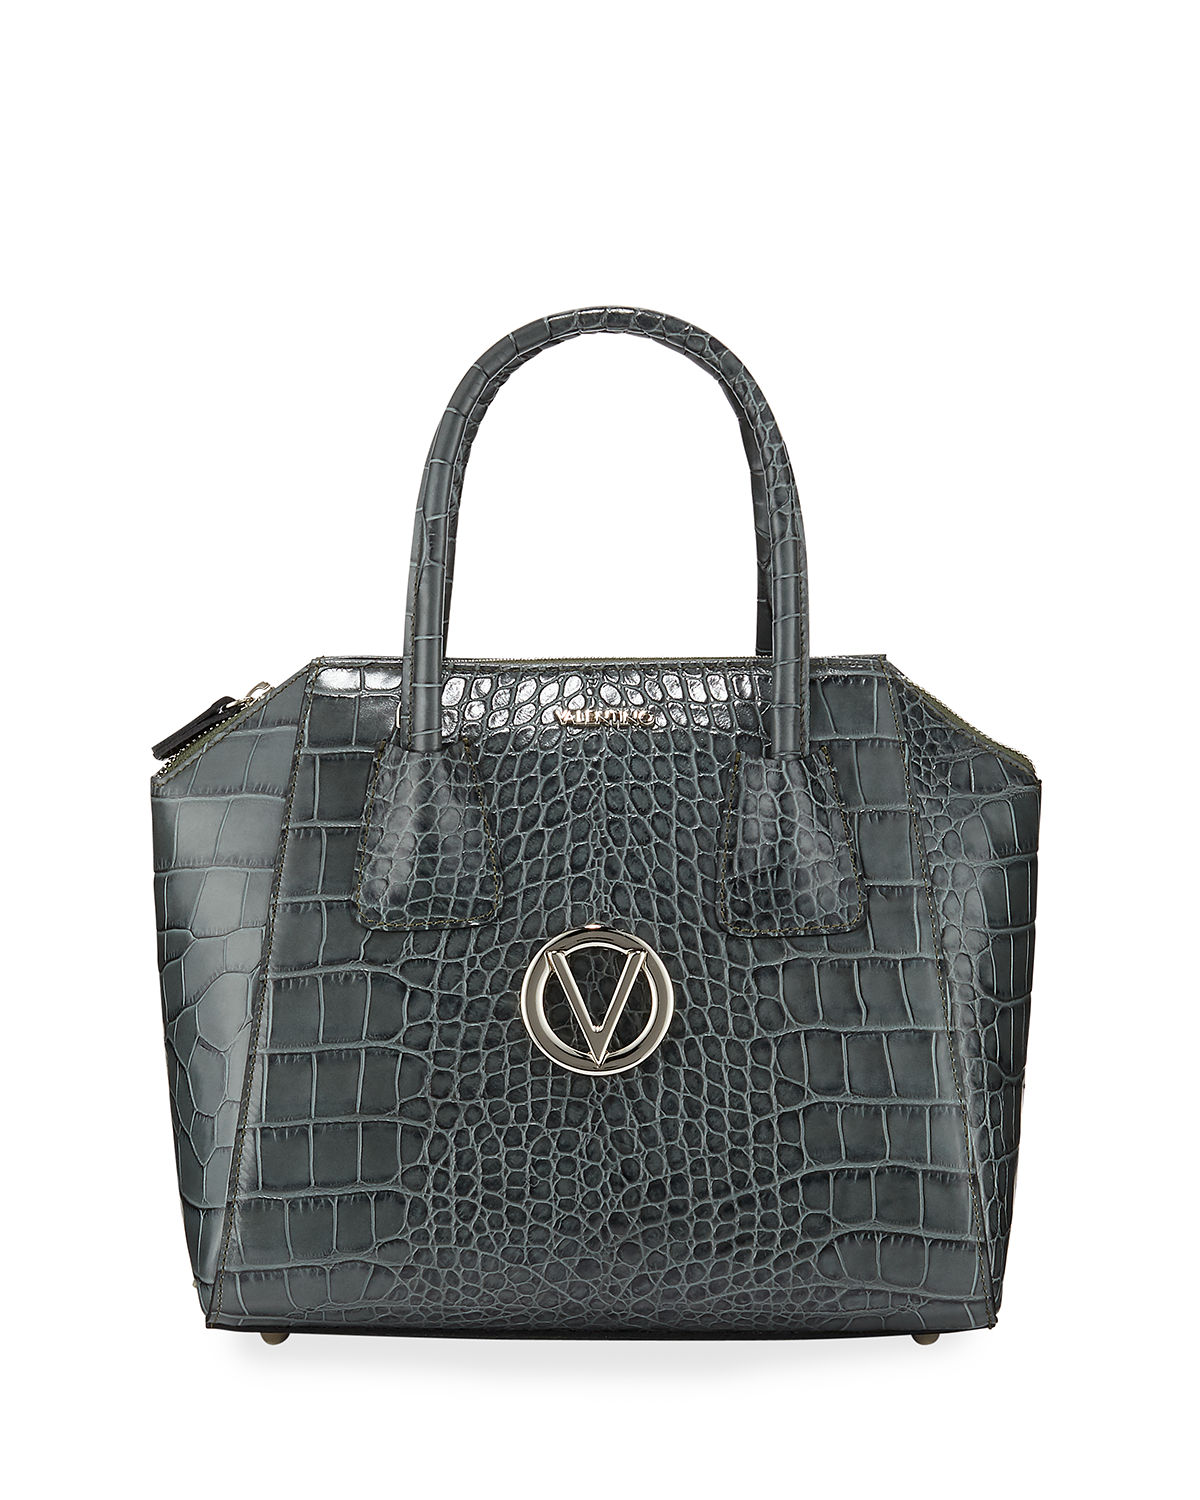 Minimi Croc-Embossed Leather Top-Handle Satchel Bag